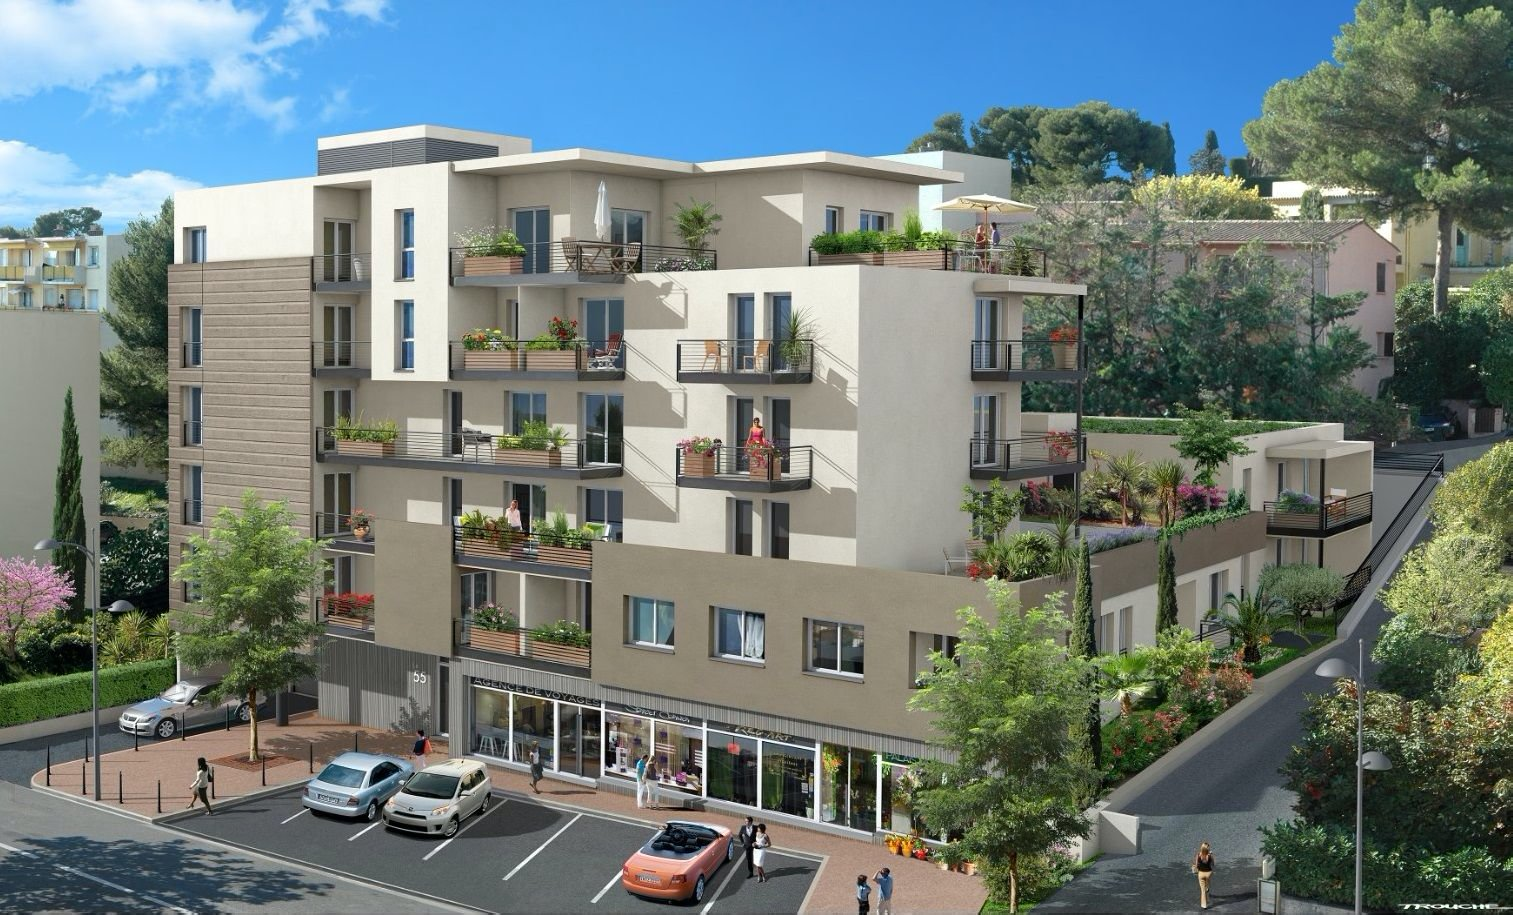 New development in Le Cannet - 10 min from the Croisette